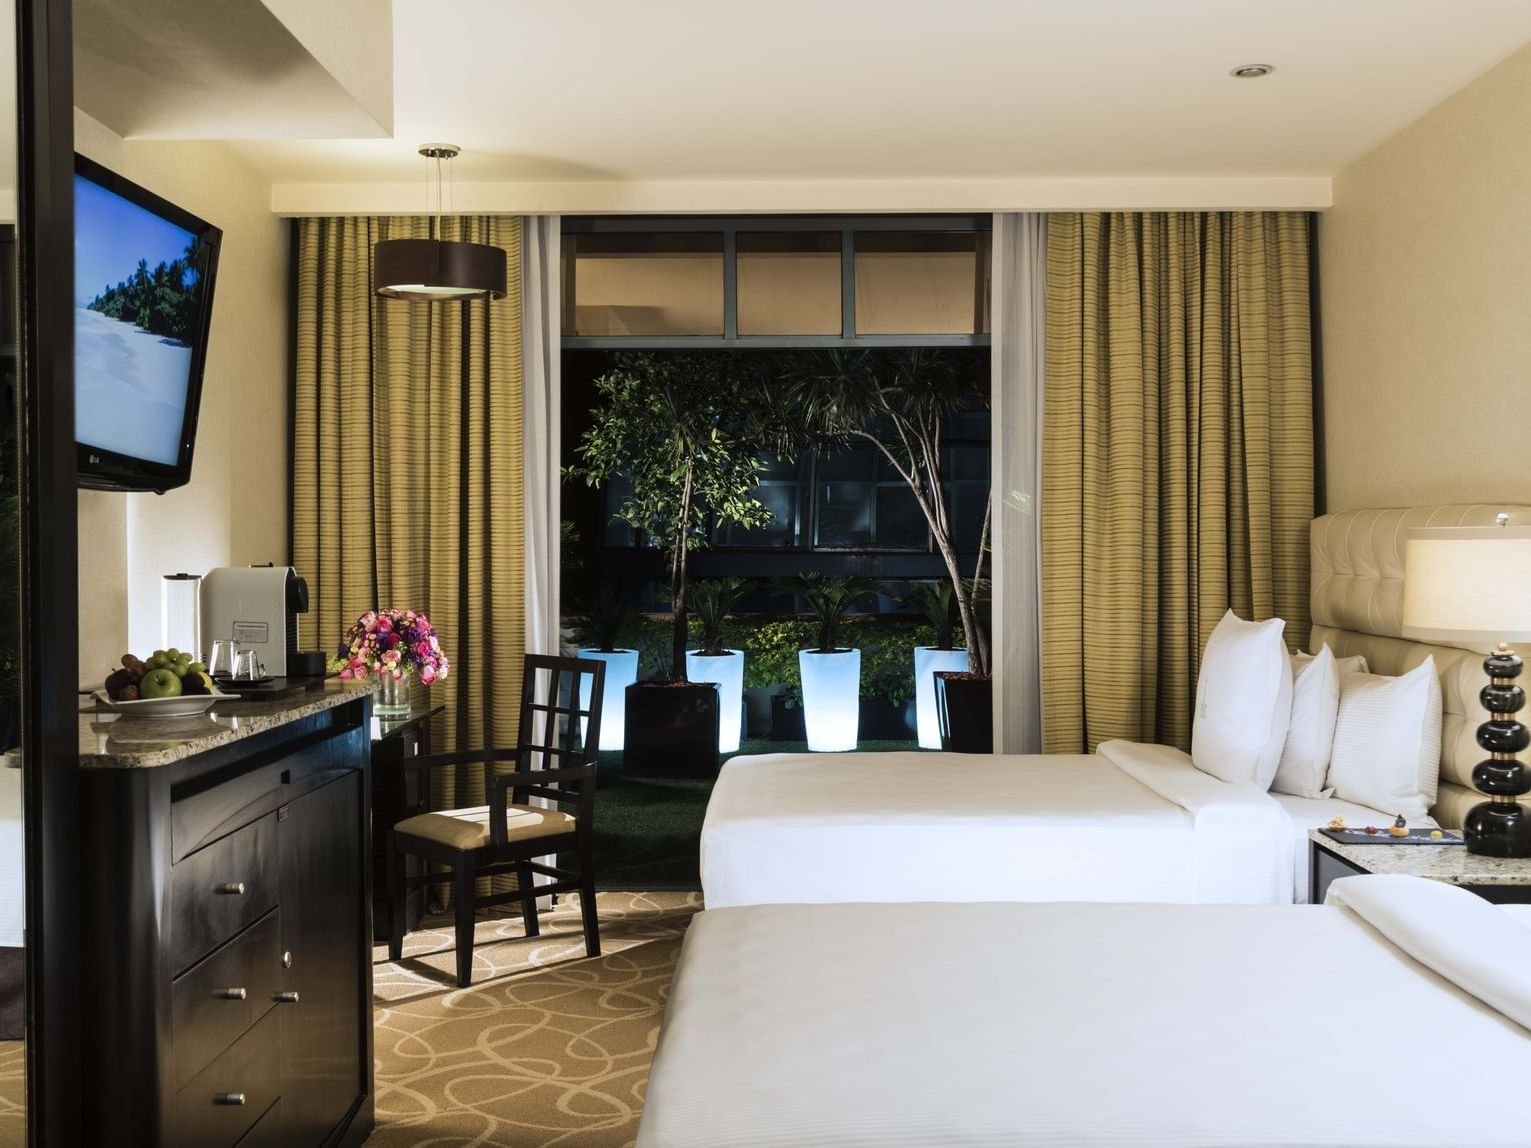 Deluxe Indoor view with double beds at Marquis Reforma